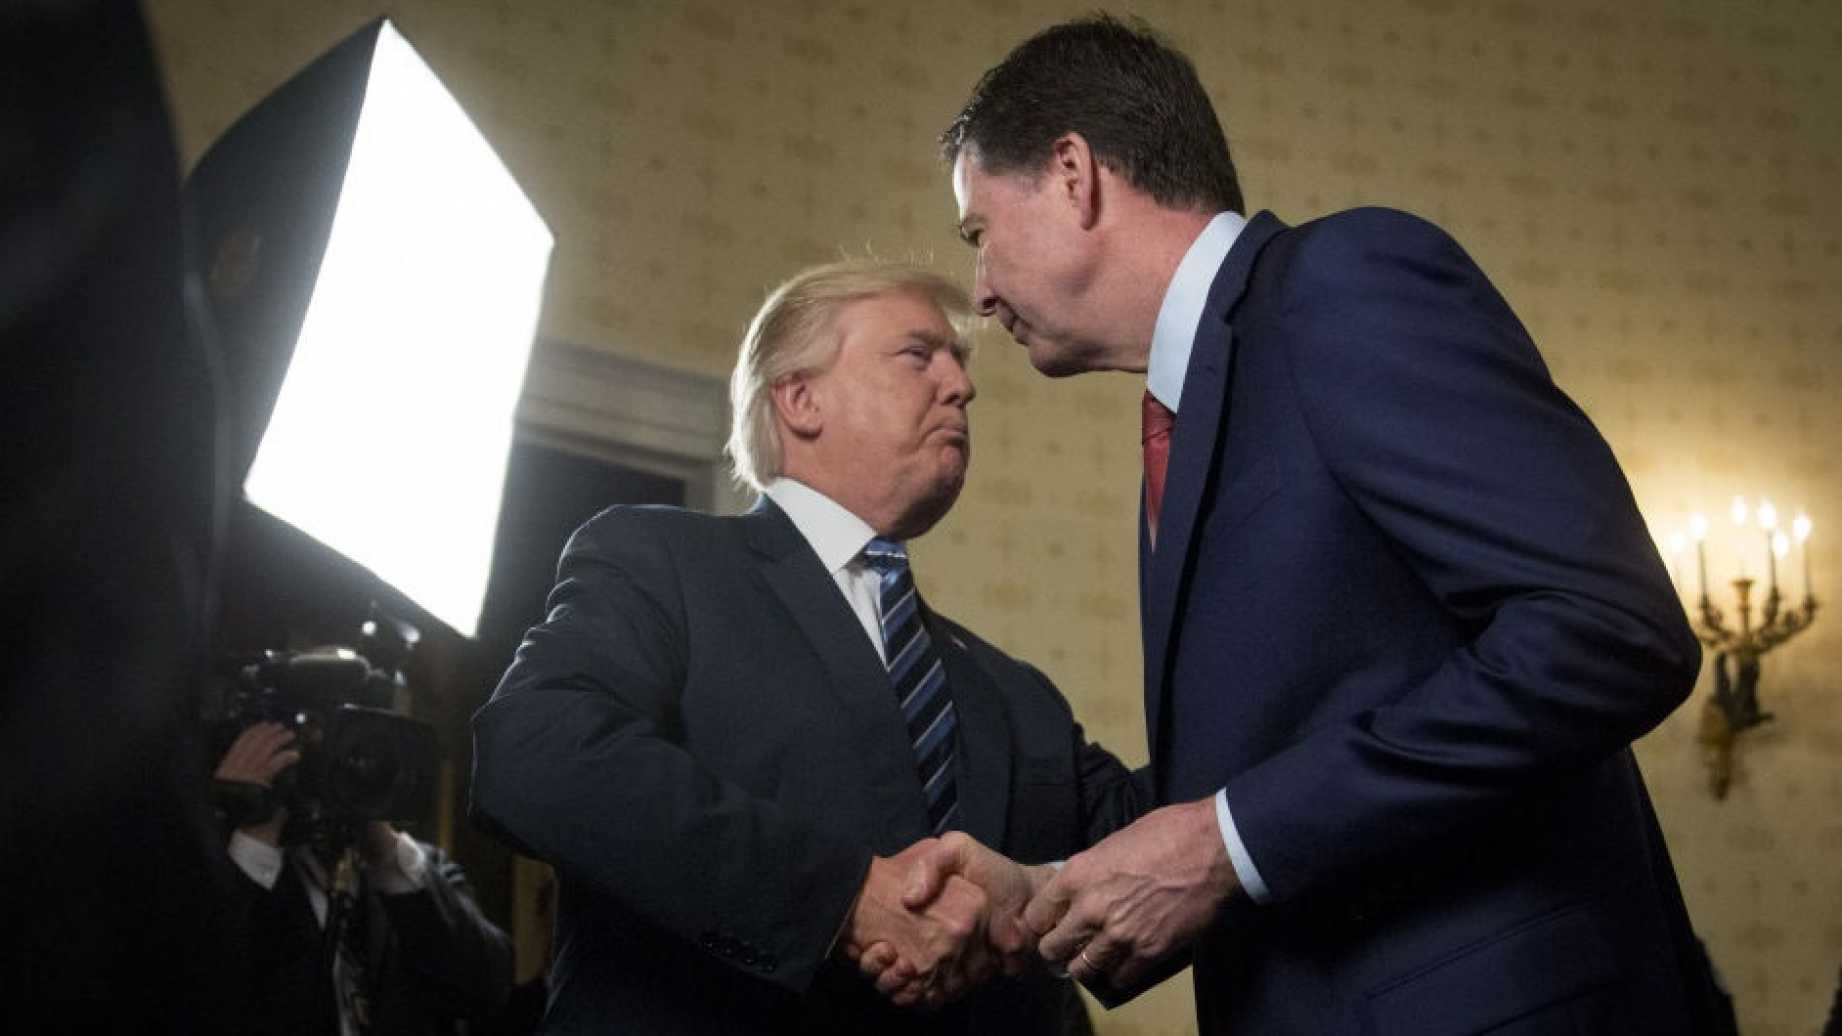 Justice Dept. Watchdog Has Evidence Comey Probed Trump, on the Sly